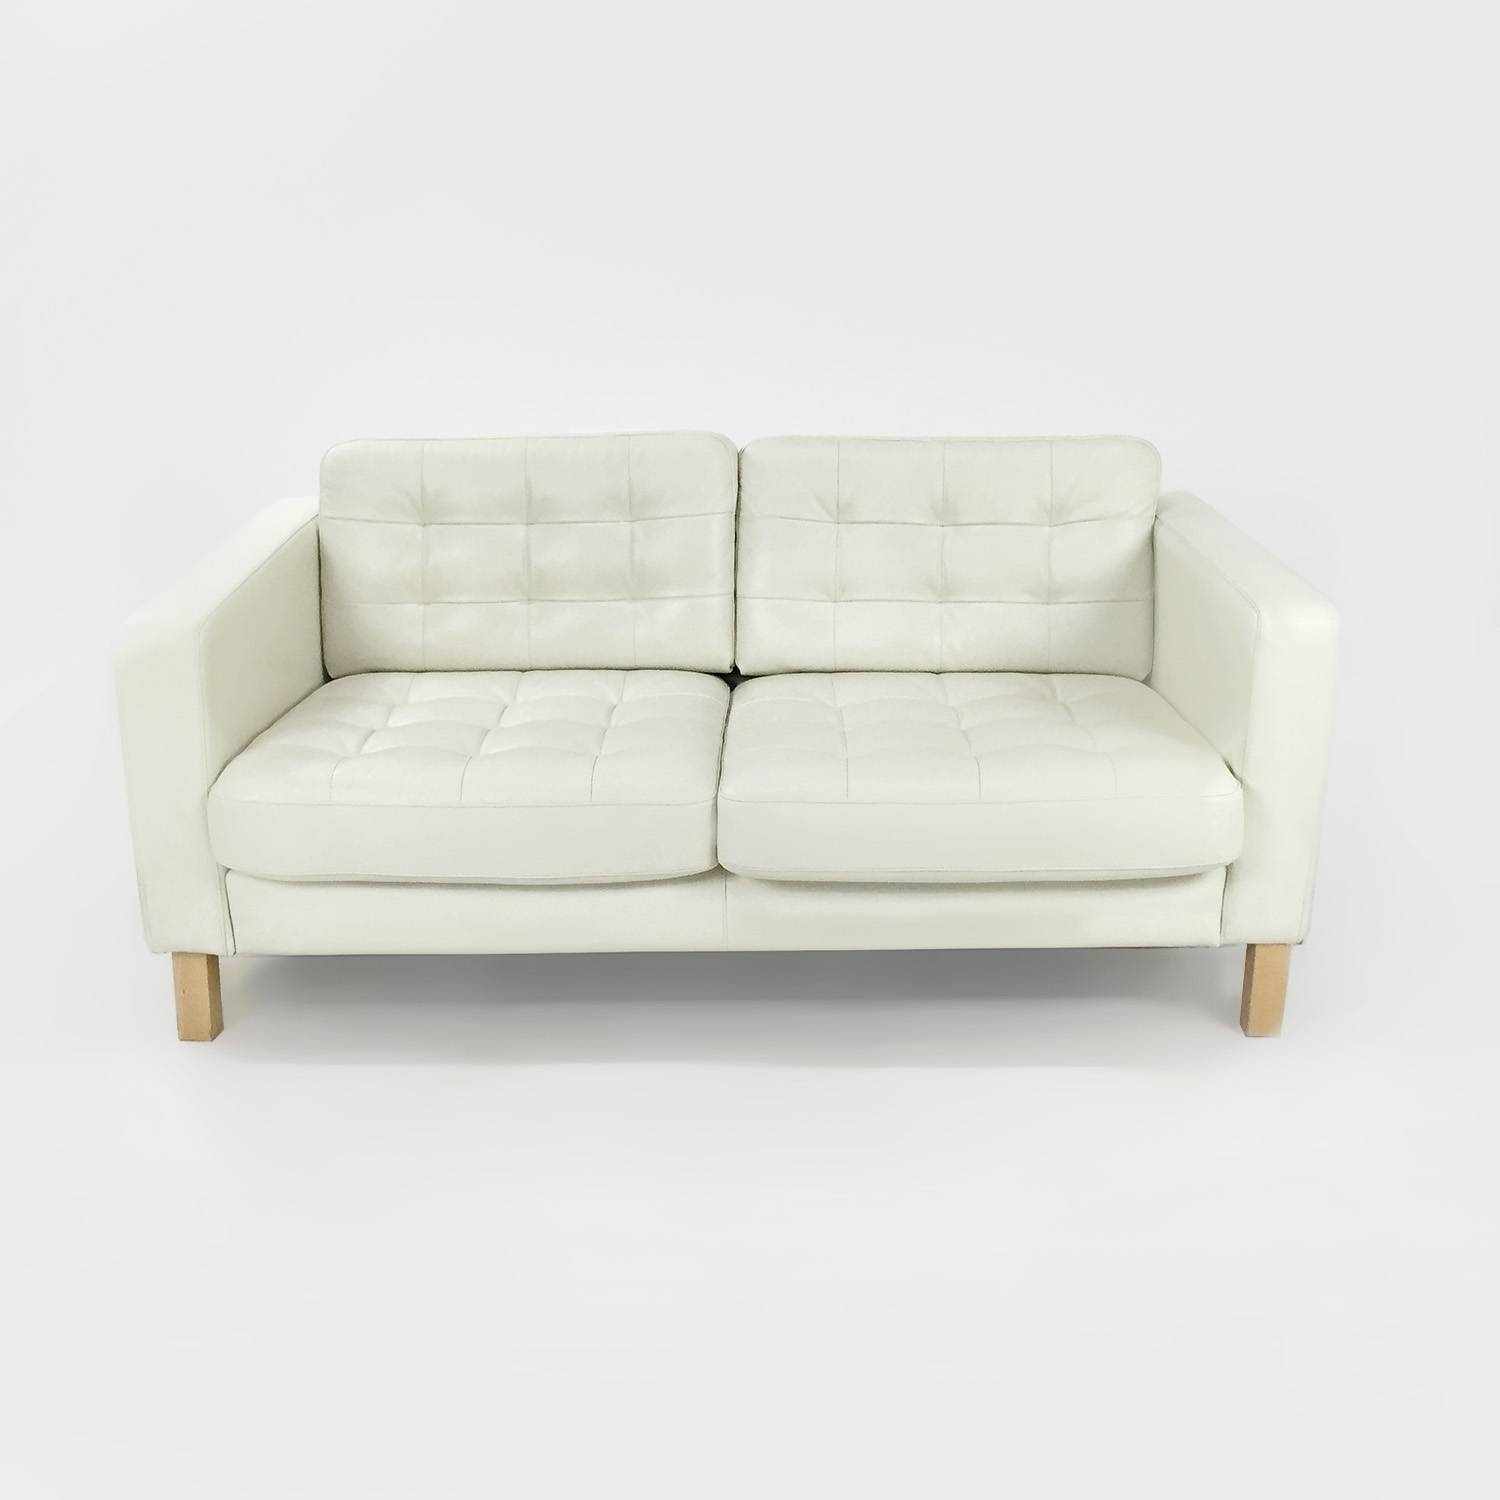 50% Off - Ikea White Leather Couch / Sofas pertaining to Off White Leather Sofa and Loveseat (Image 1 of 30)